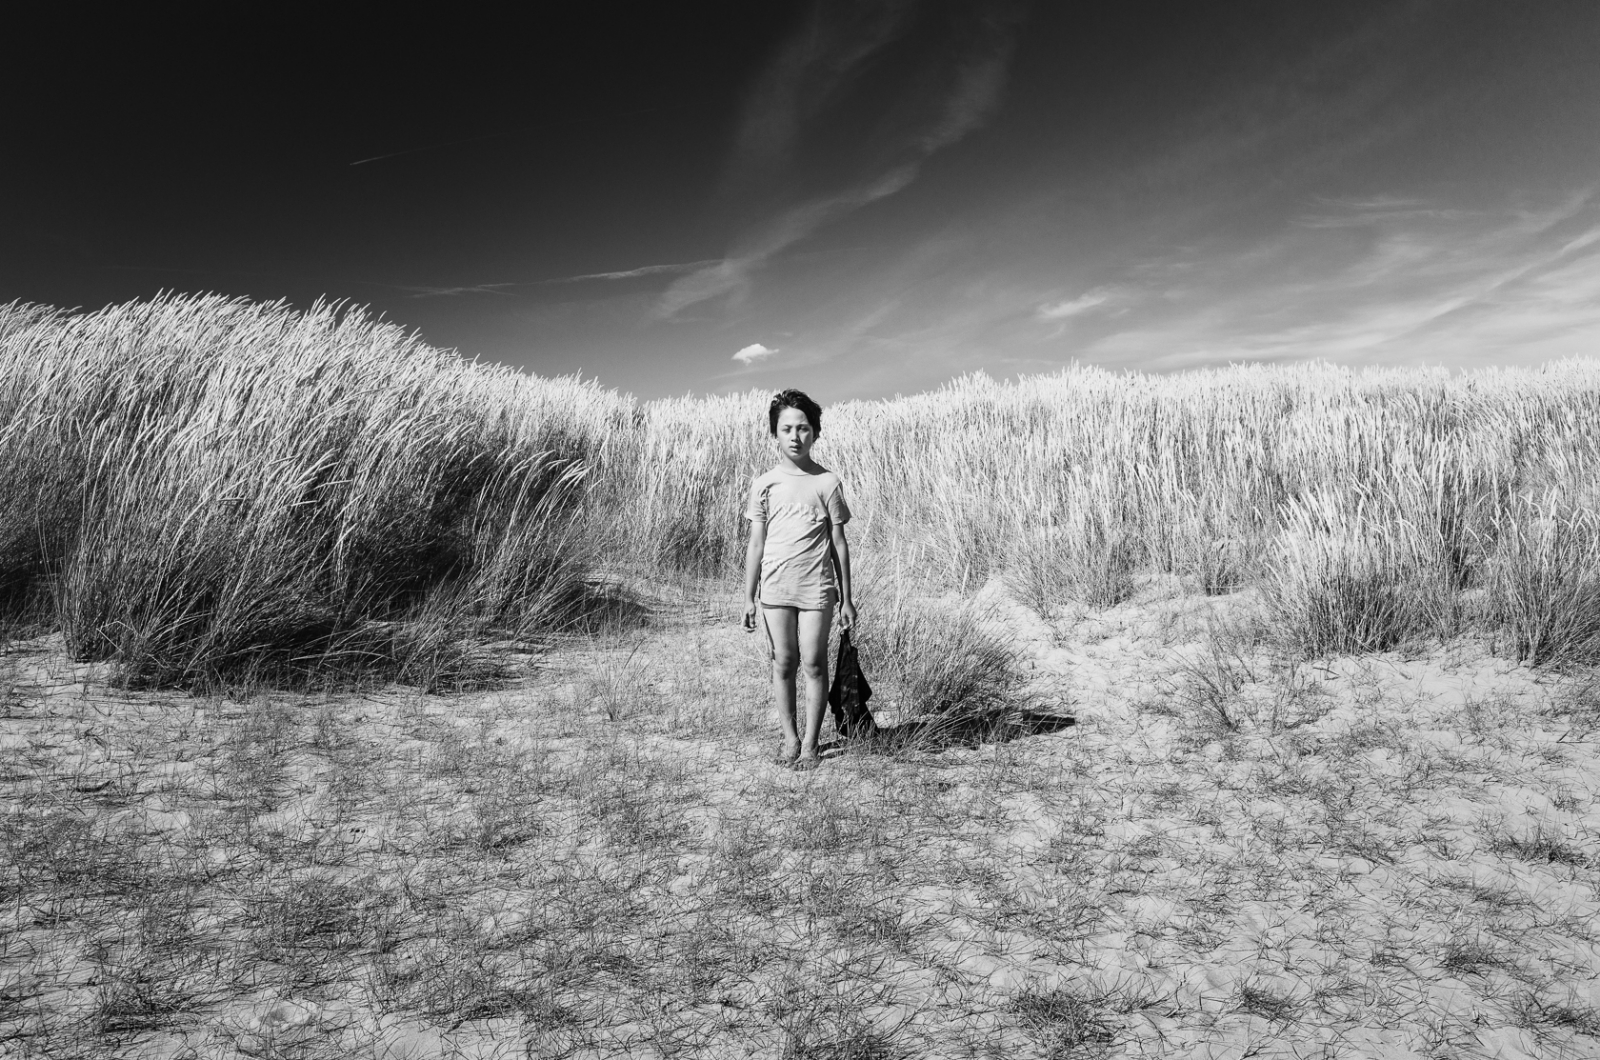 Black and White Photography Ryuichi at Camber Sands - Ordinary Days